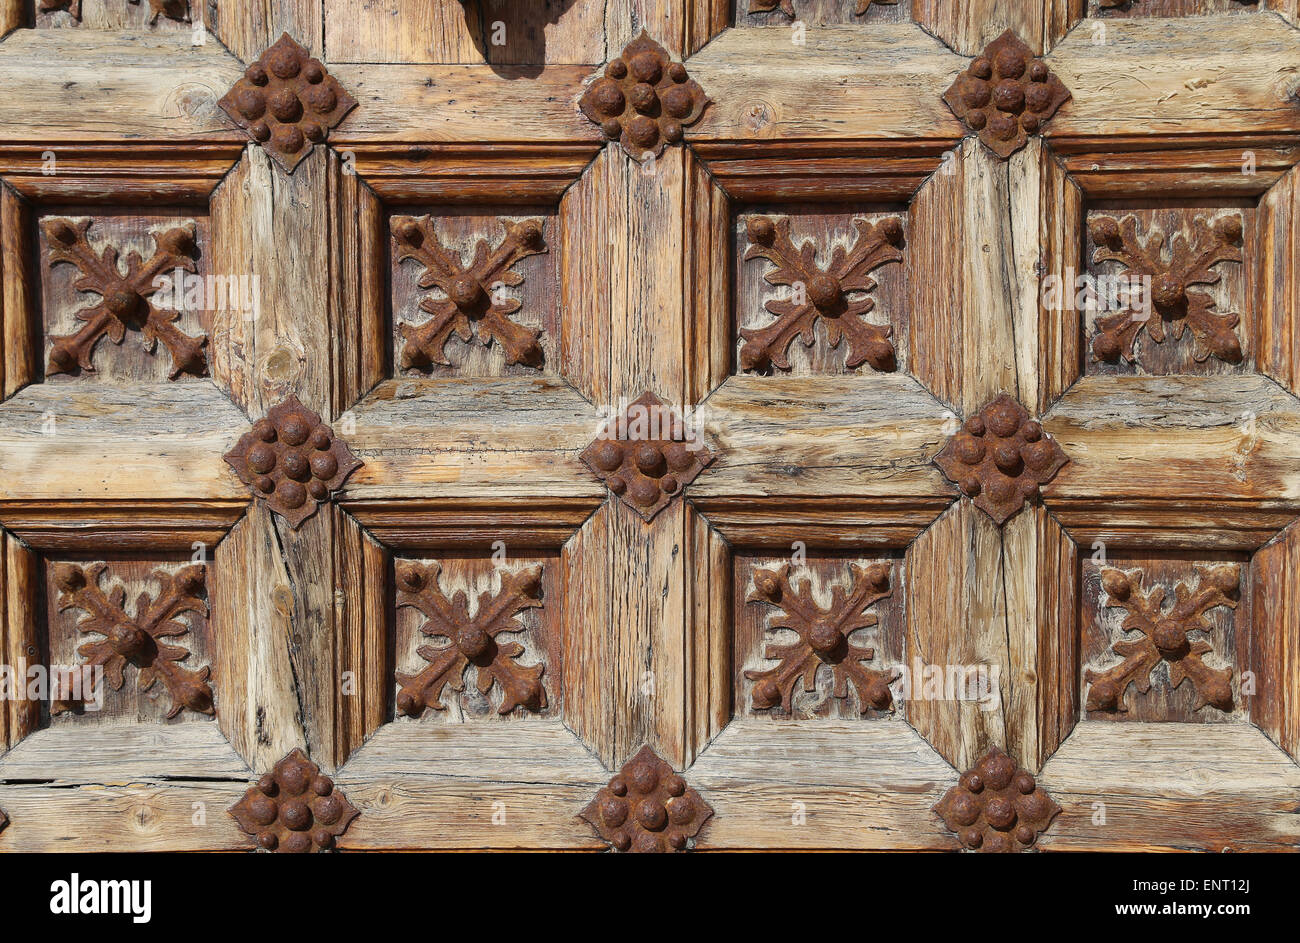 Spain. Catalonia. Sitges. Door. Detail. - Stock Image